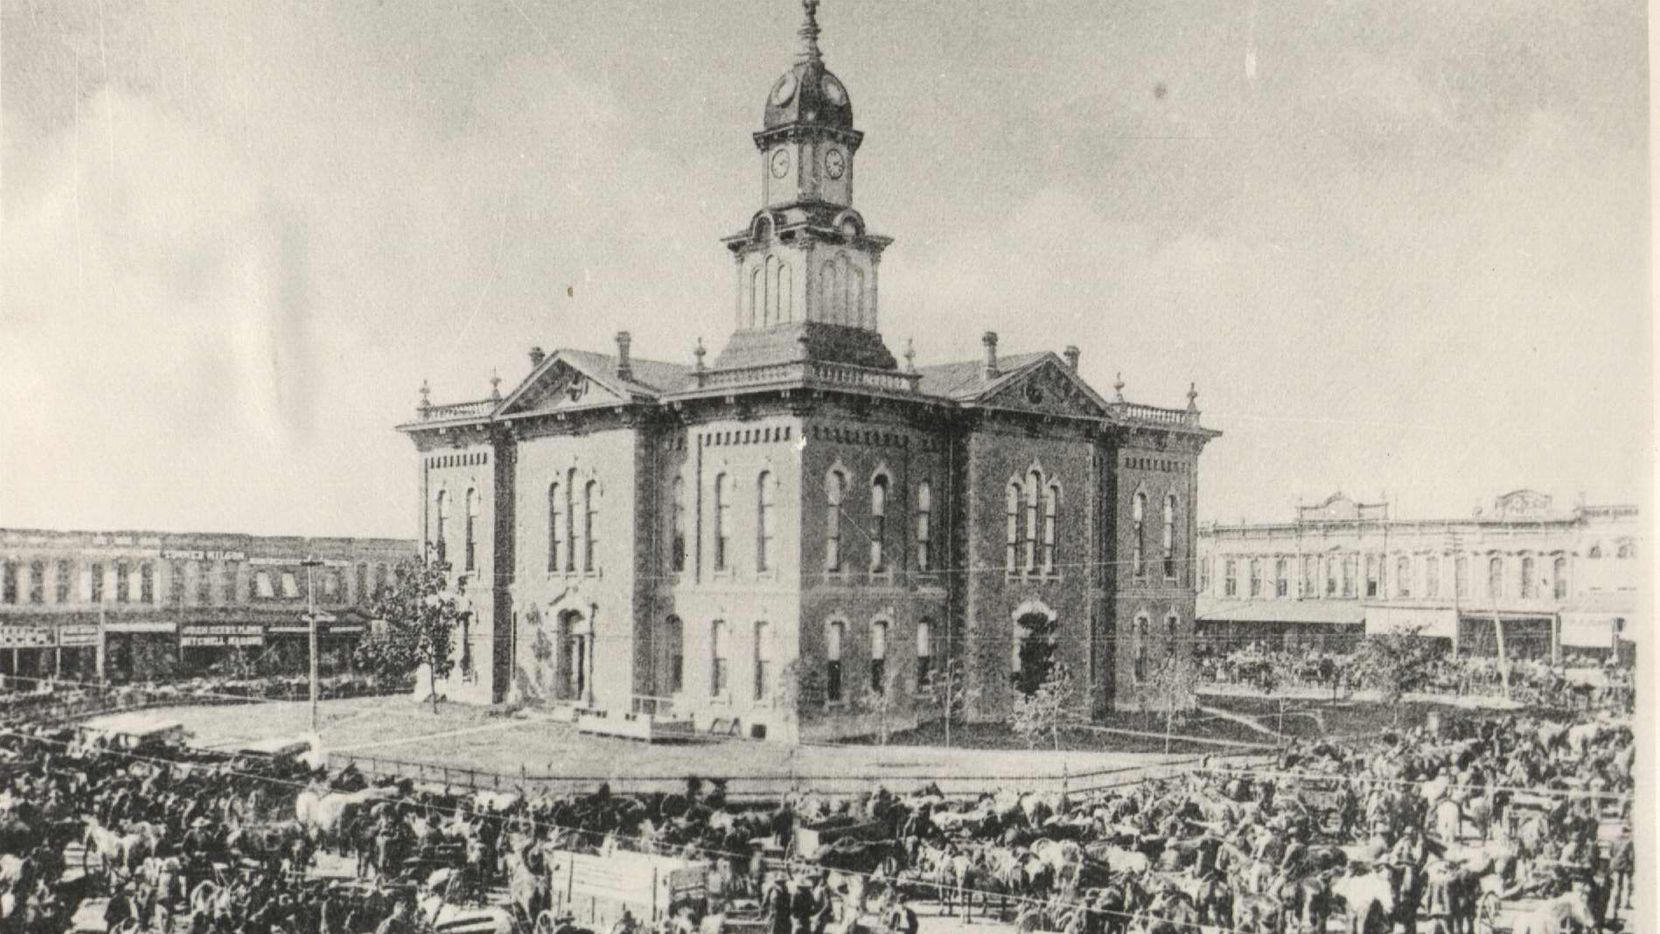 The Grayson County courthouse in 1880 before it was burned by a lynch mob in 1930. A group is campaigning to install a historical marker on the grounds to commemorate that event and its victim.